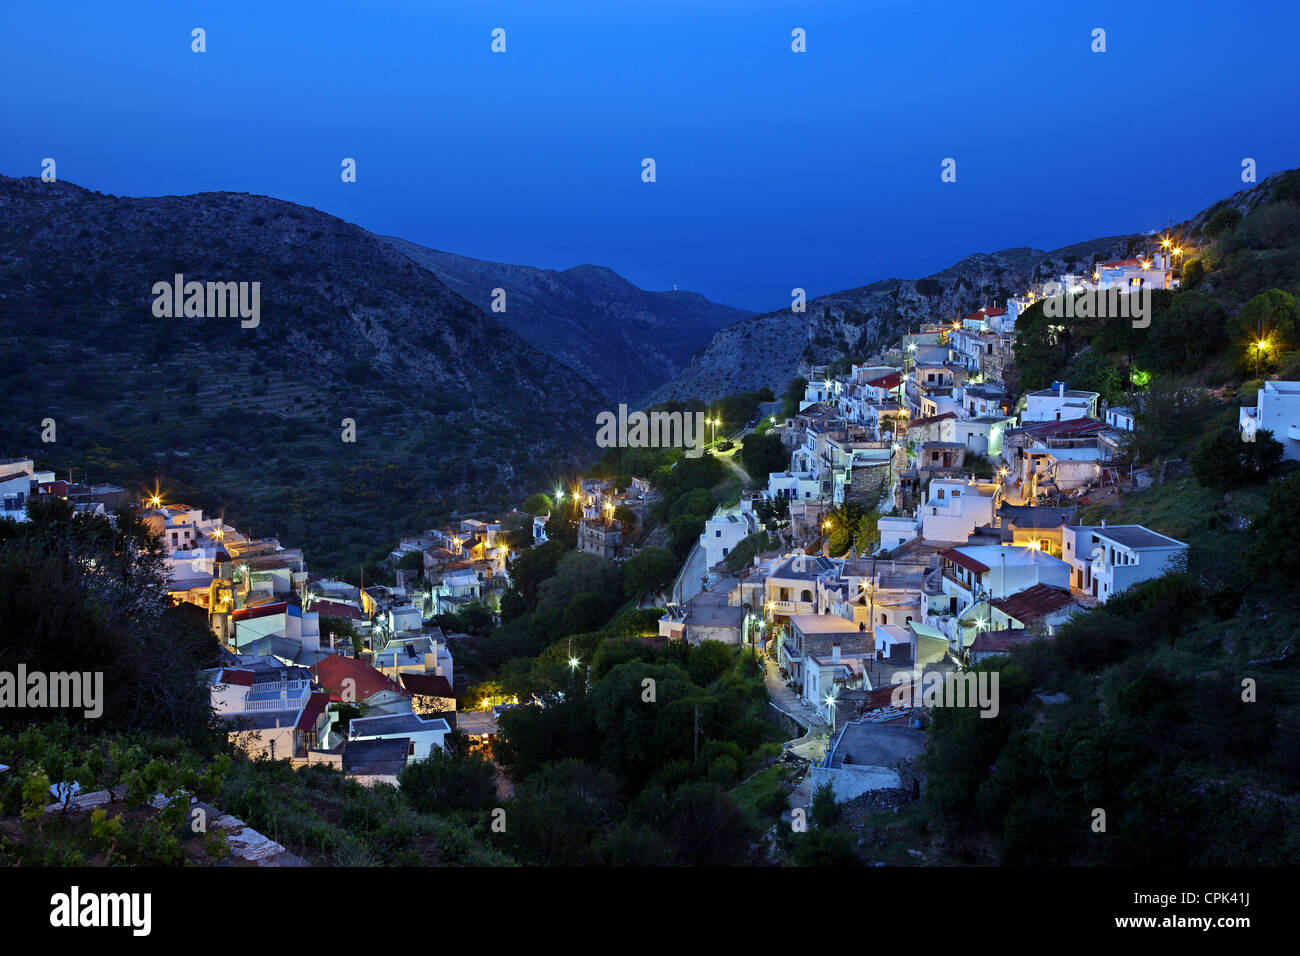 Night view of Koronos village, one of the most beautiful mountainous villages of Naxos island, Cyclades, Greece. - Stock Image